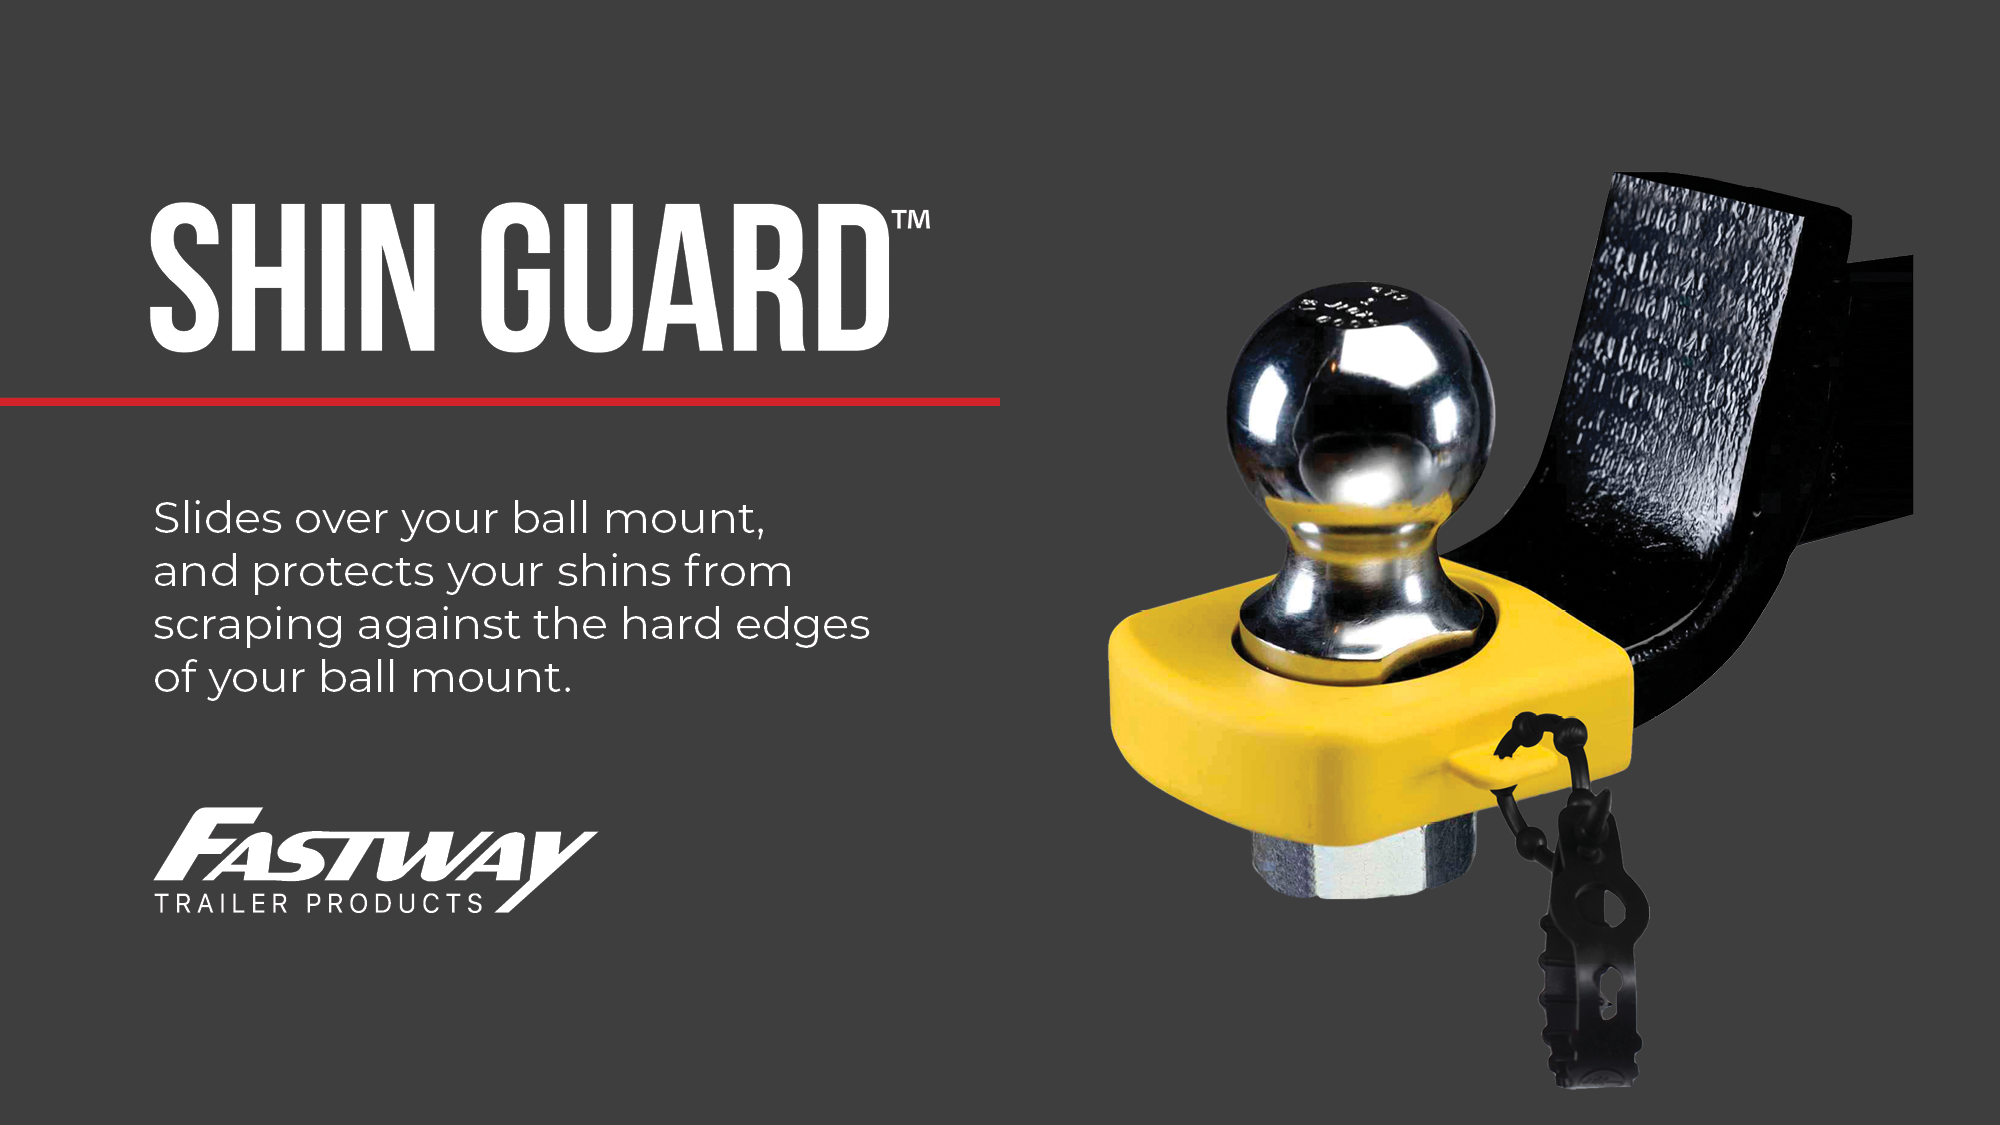 FW_Shin-Guard_Social-Post_Benefits_Yellow-On-Black-Ball-Mount.png#asset:5825:url